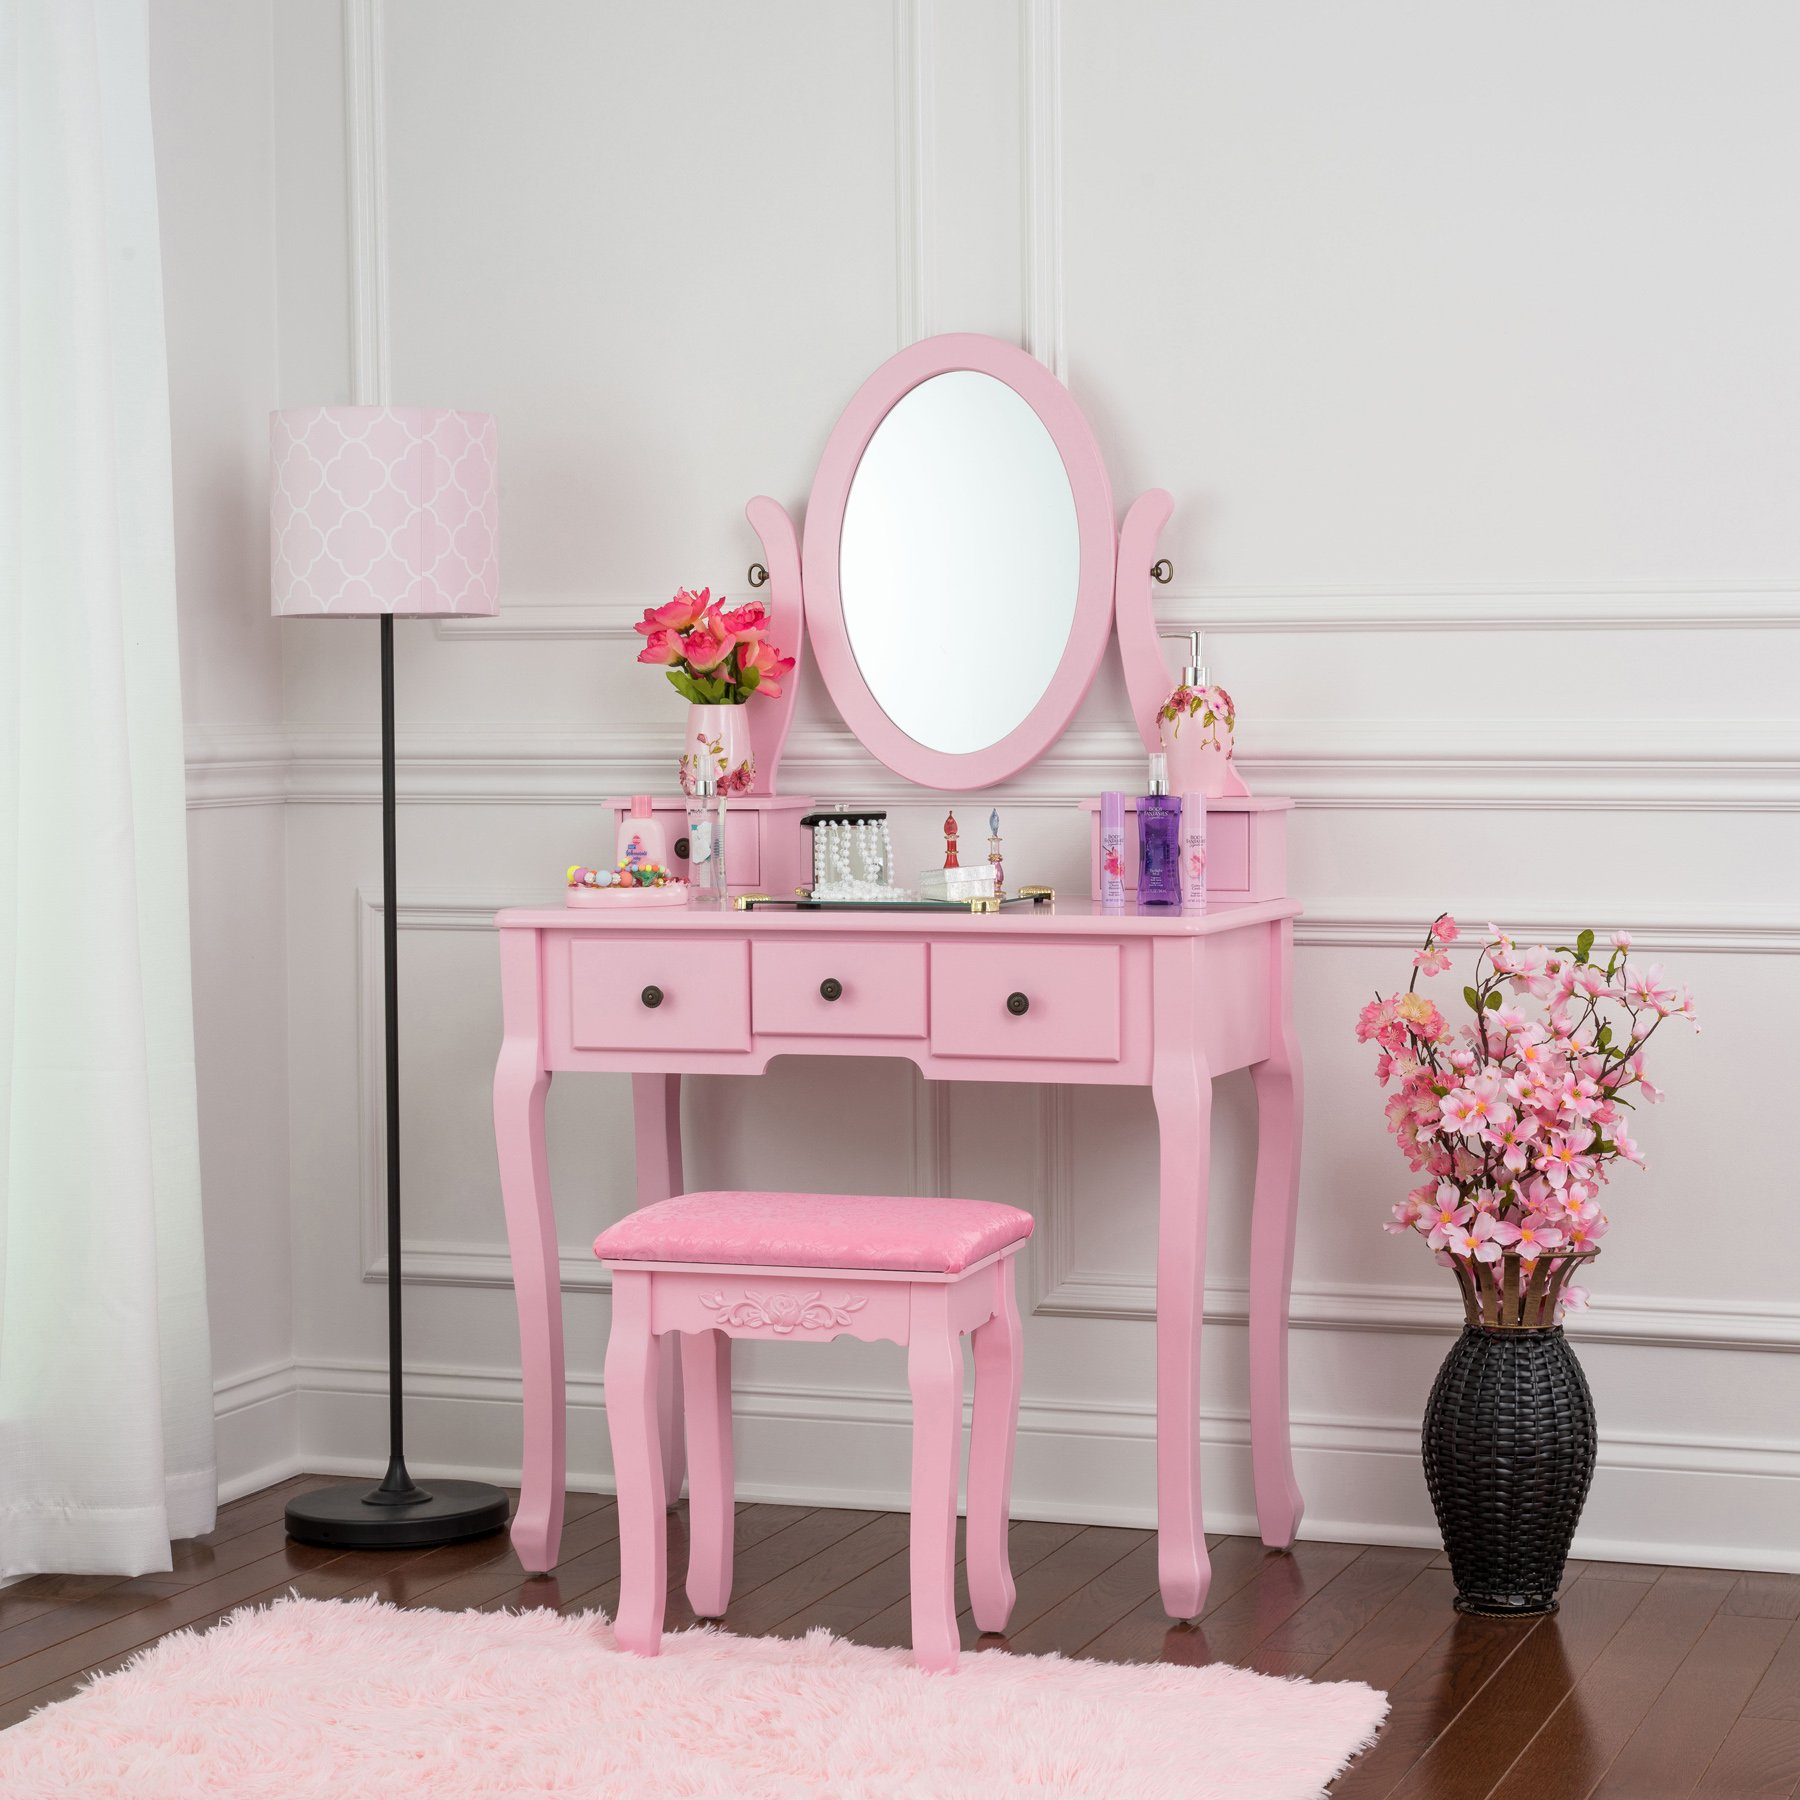 Fineboard HFB-VT07-PK Single Mirror Dressing Set Five Organization Drawers Vanity Table with Wooden Stool, Pink